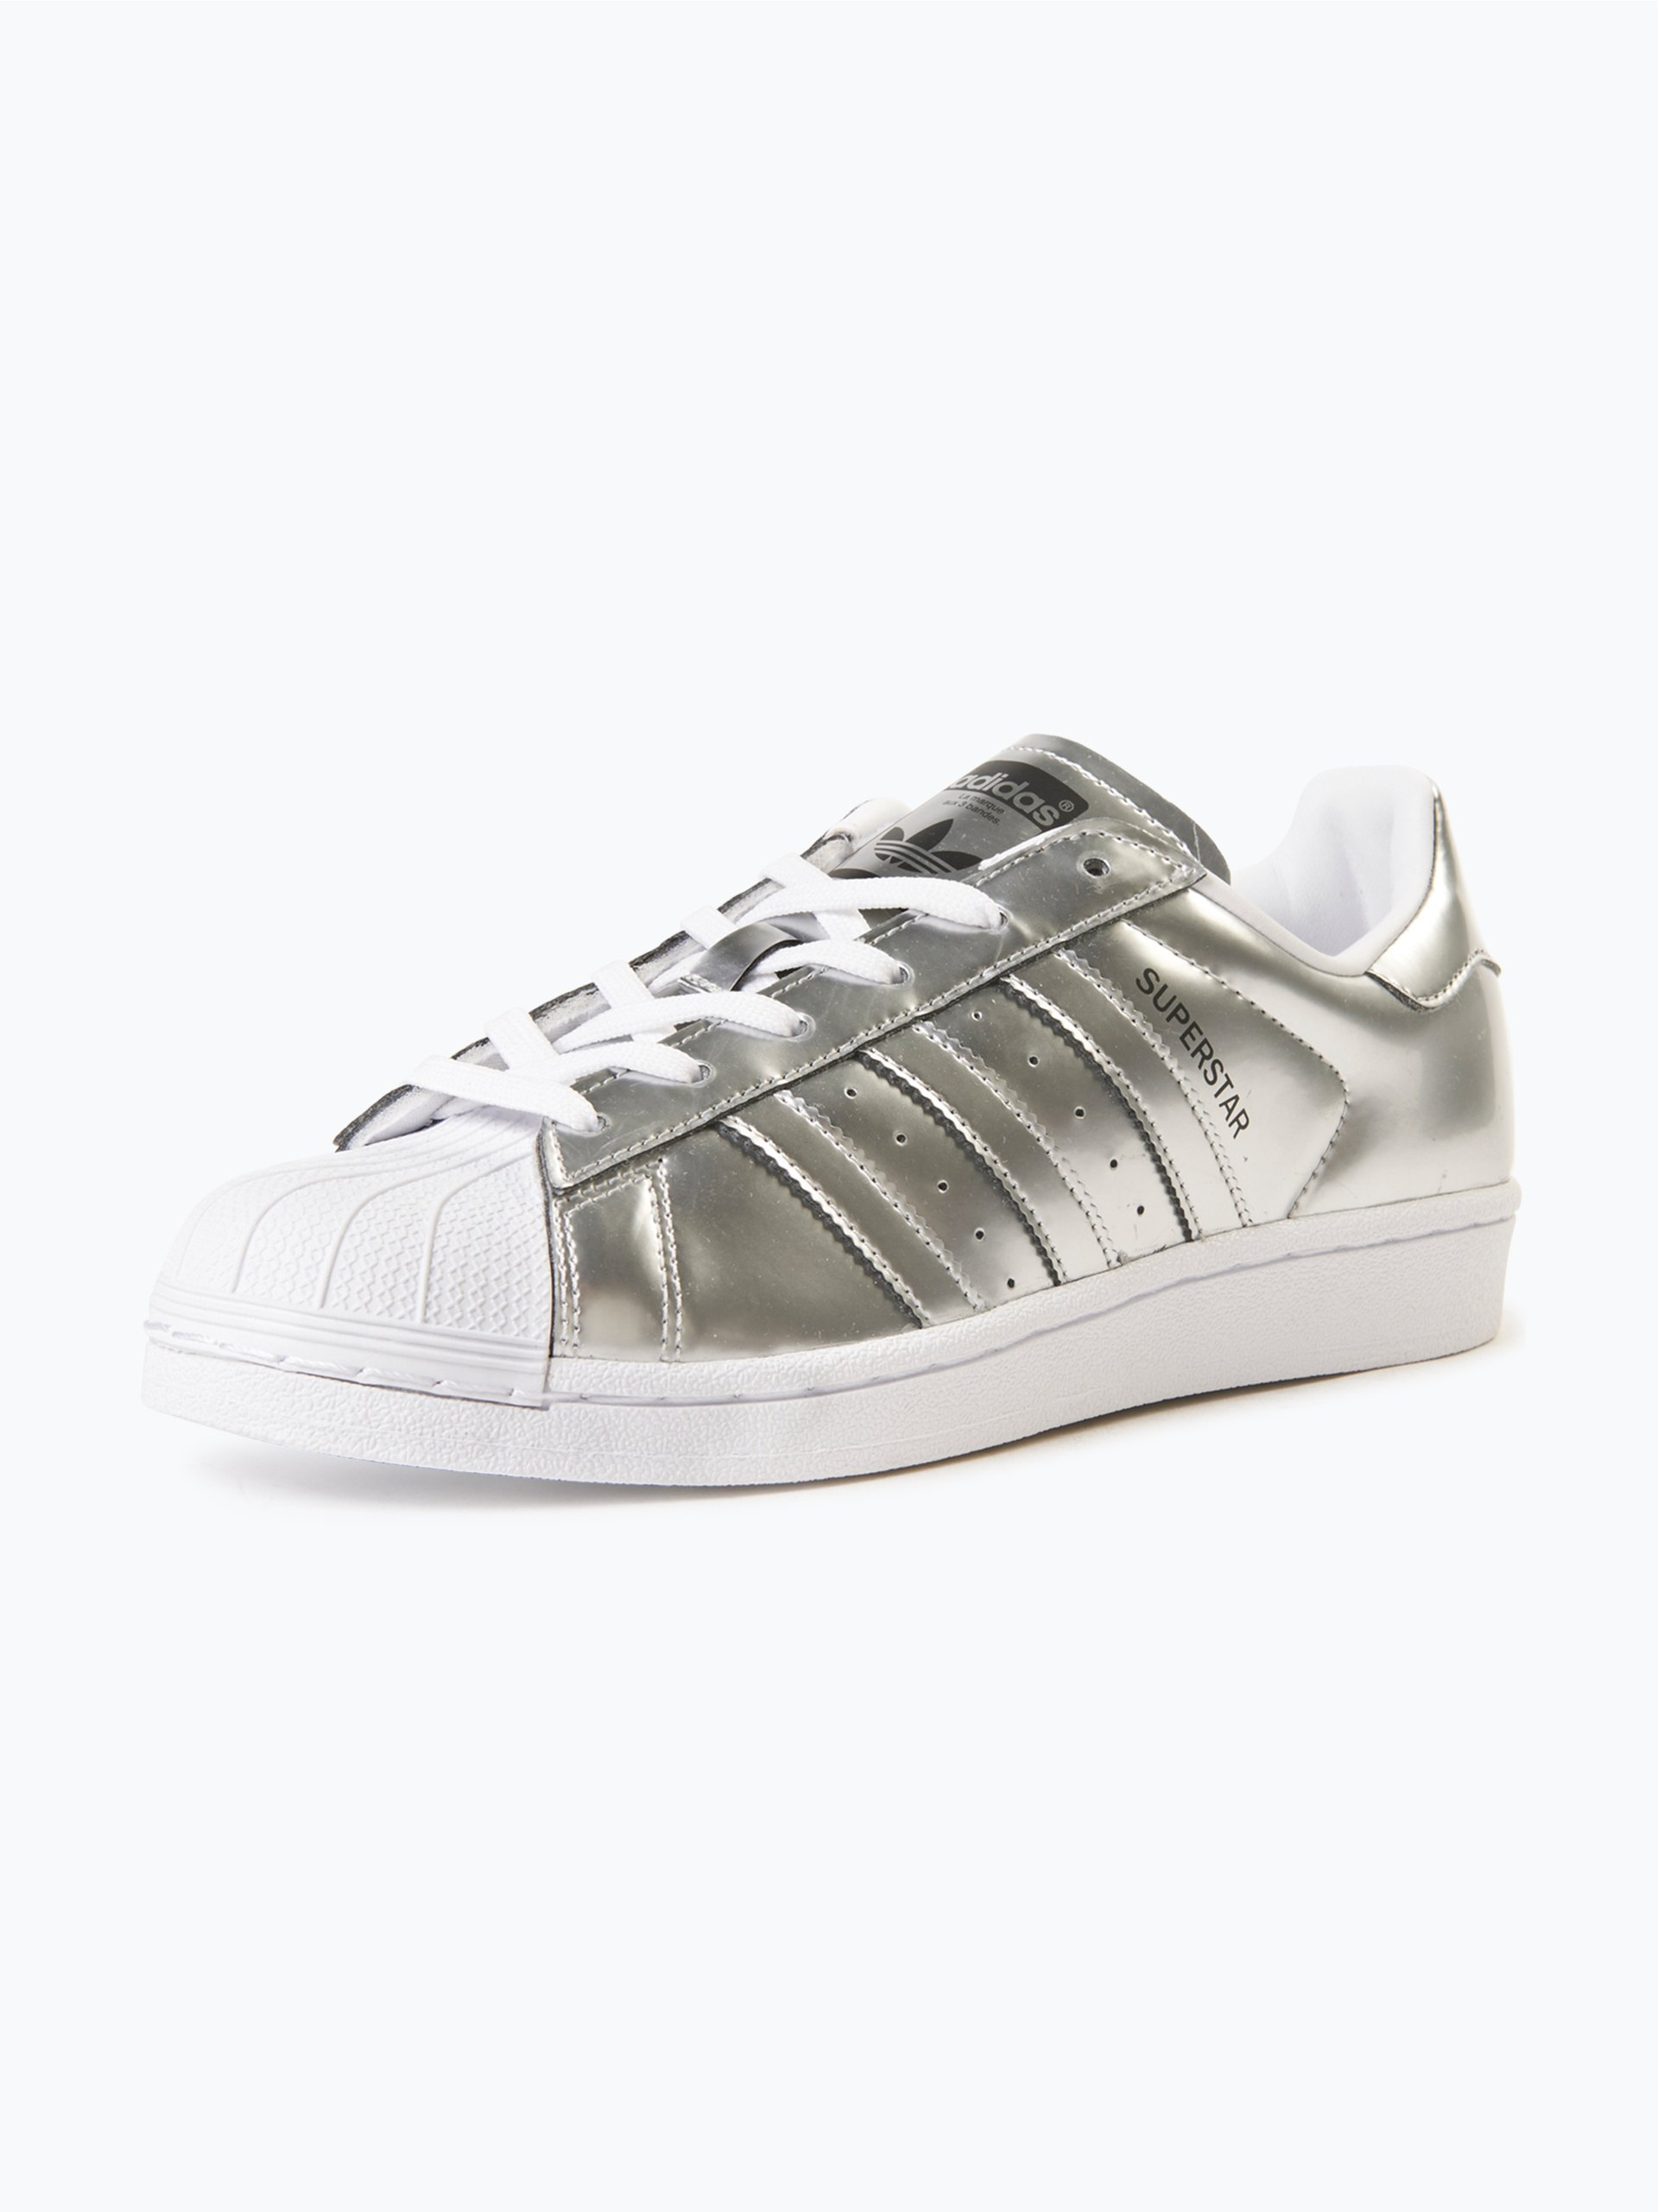 adidas originals damen sneaker superstar w silber uni. Black Bedroom Furniture Sets. Home Design Ideas